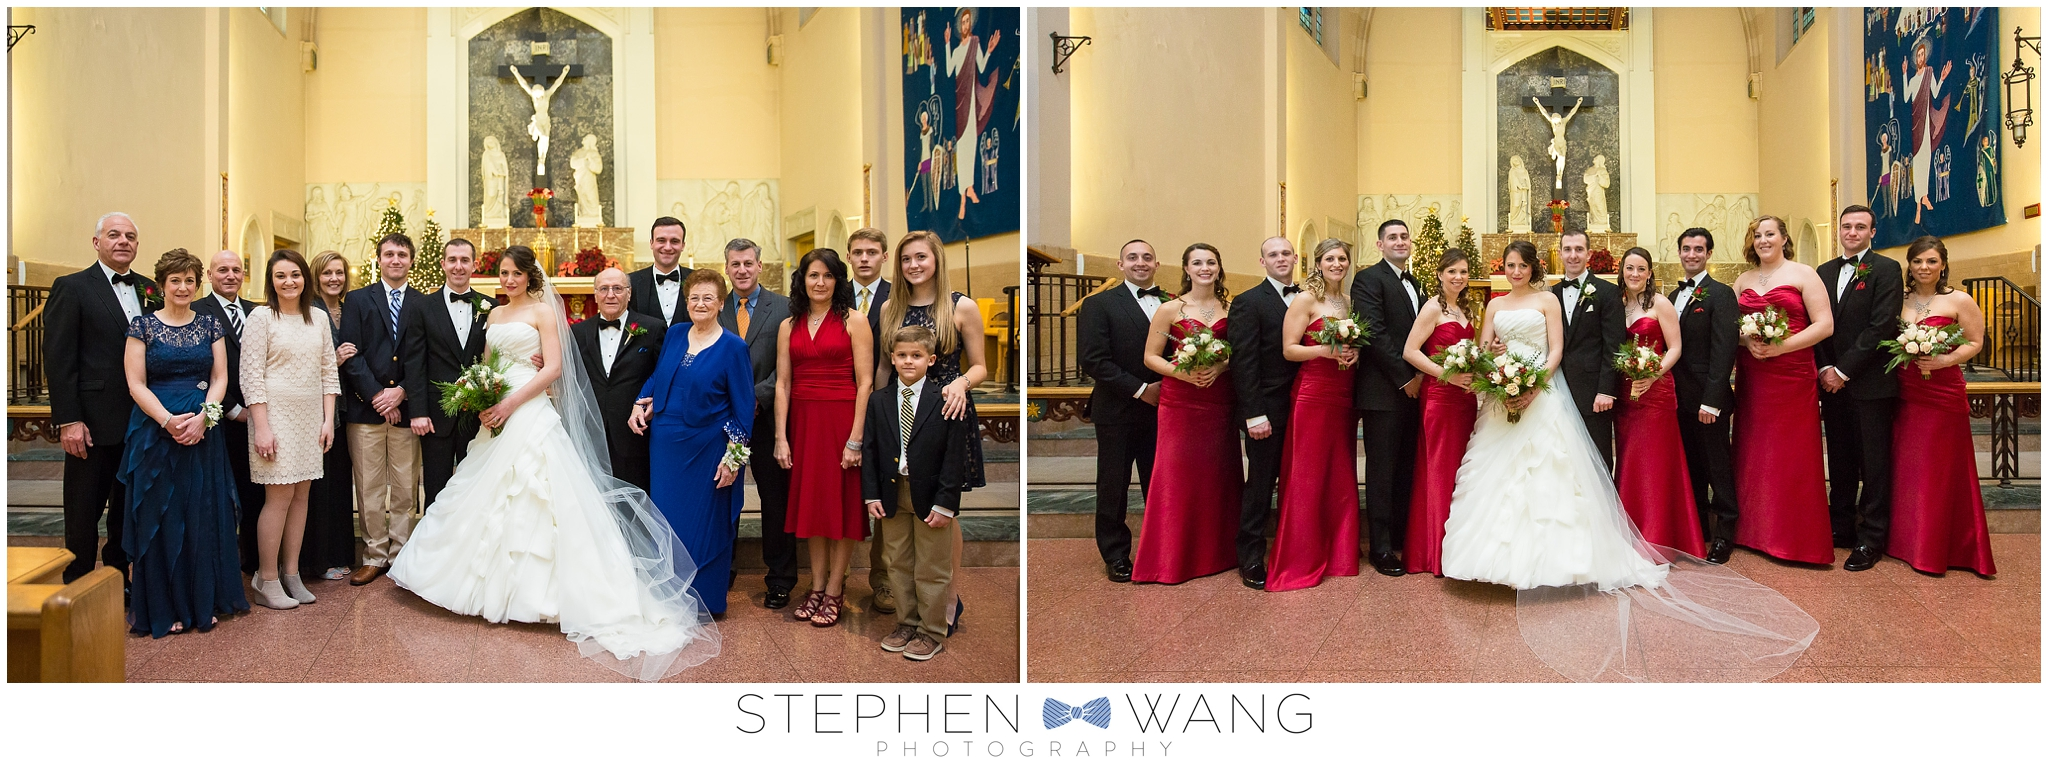 Stephen Wang Photography Wedding Photographer Connecticut CT Aquaturf Southington Winter Wedding Christmas Wedding Holiday Season-12-18_0012.jpg